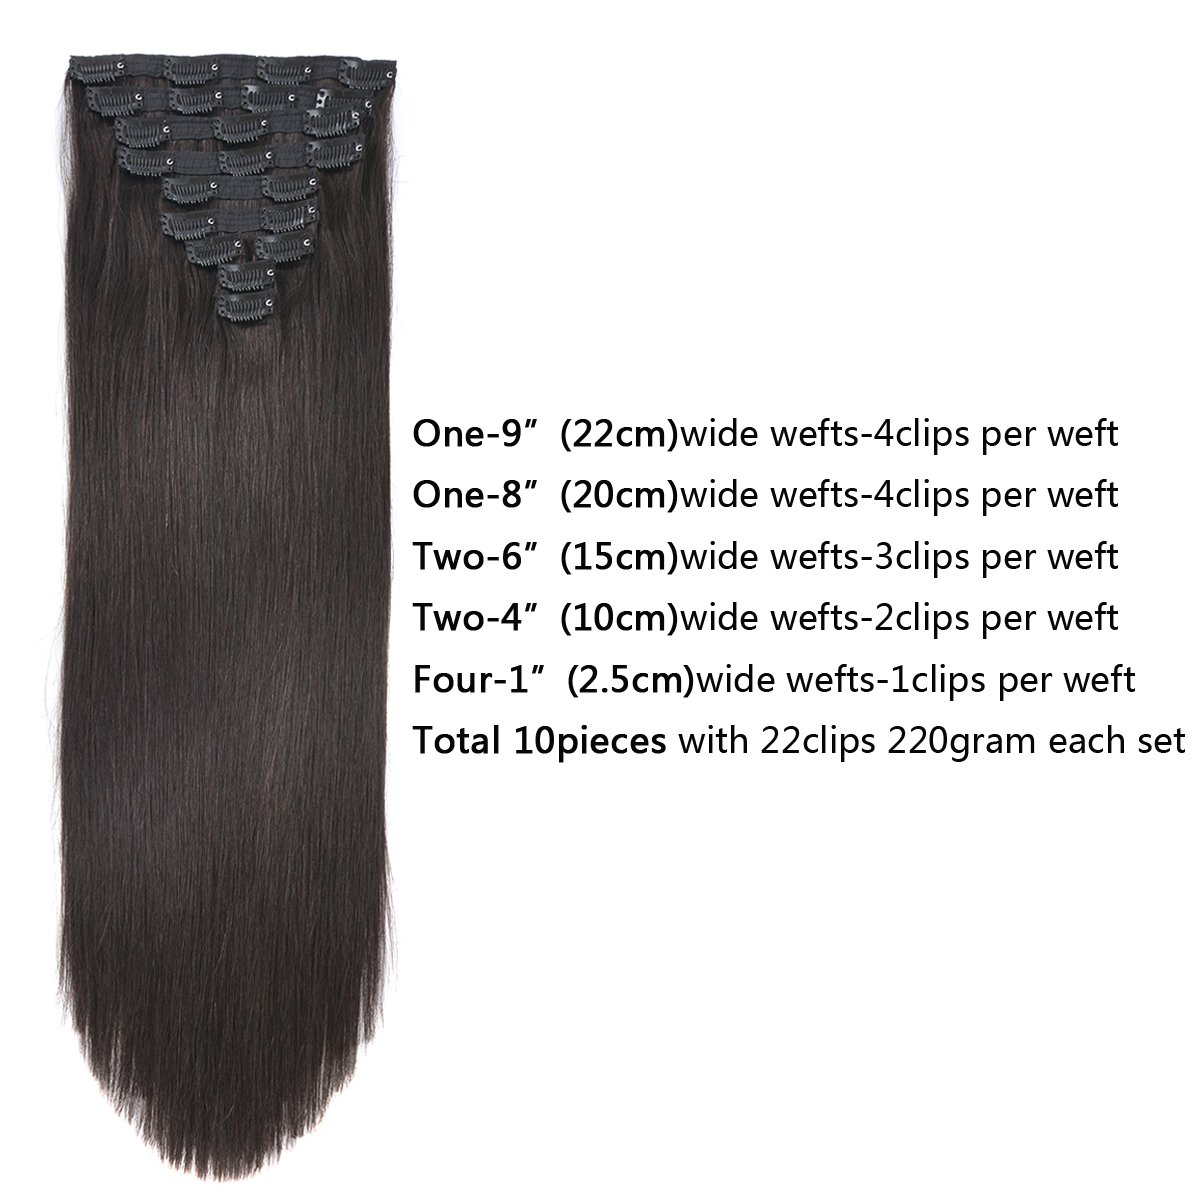 20'' Clip in Human Hair Extensions Natural Hair Clip in Extensions for Thick Hair Full Head Off Black #1B 10pieces 220grams/7.7oz by BEAUTY PLUS (Image #2)